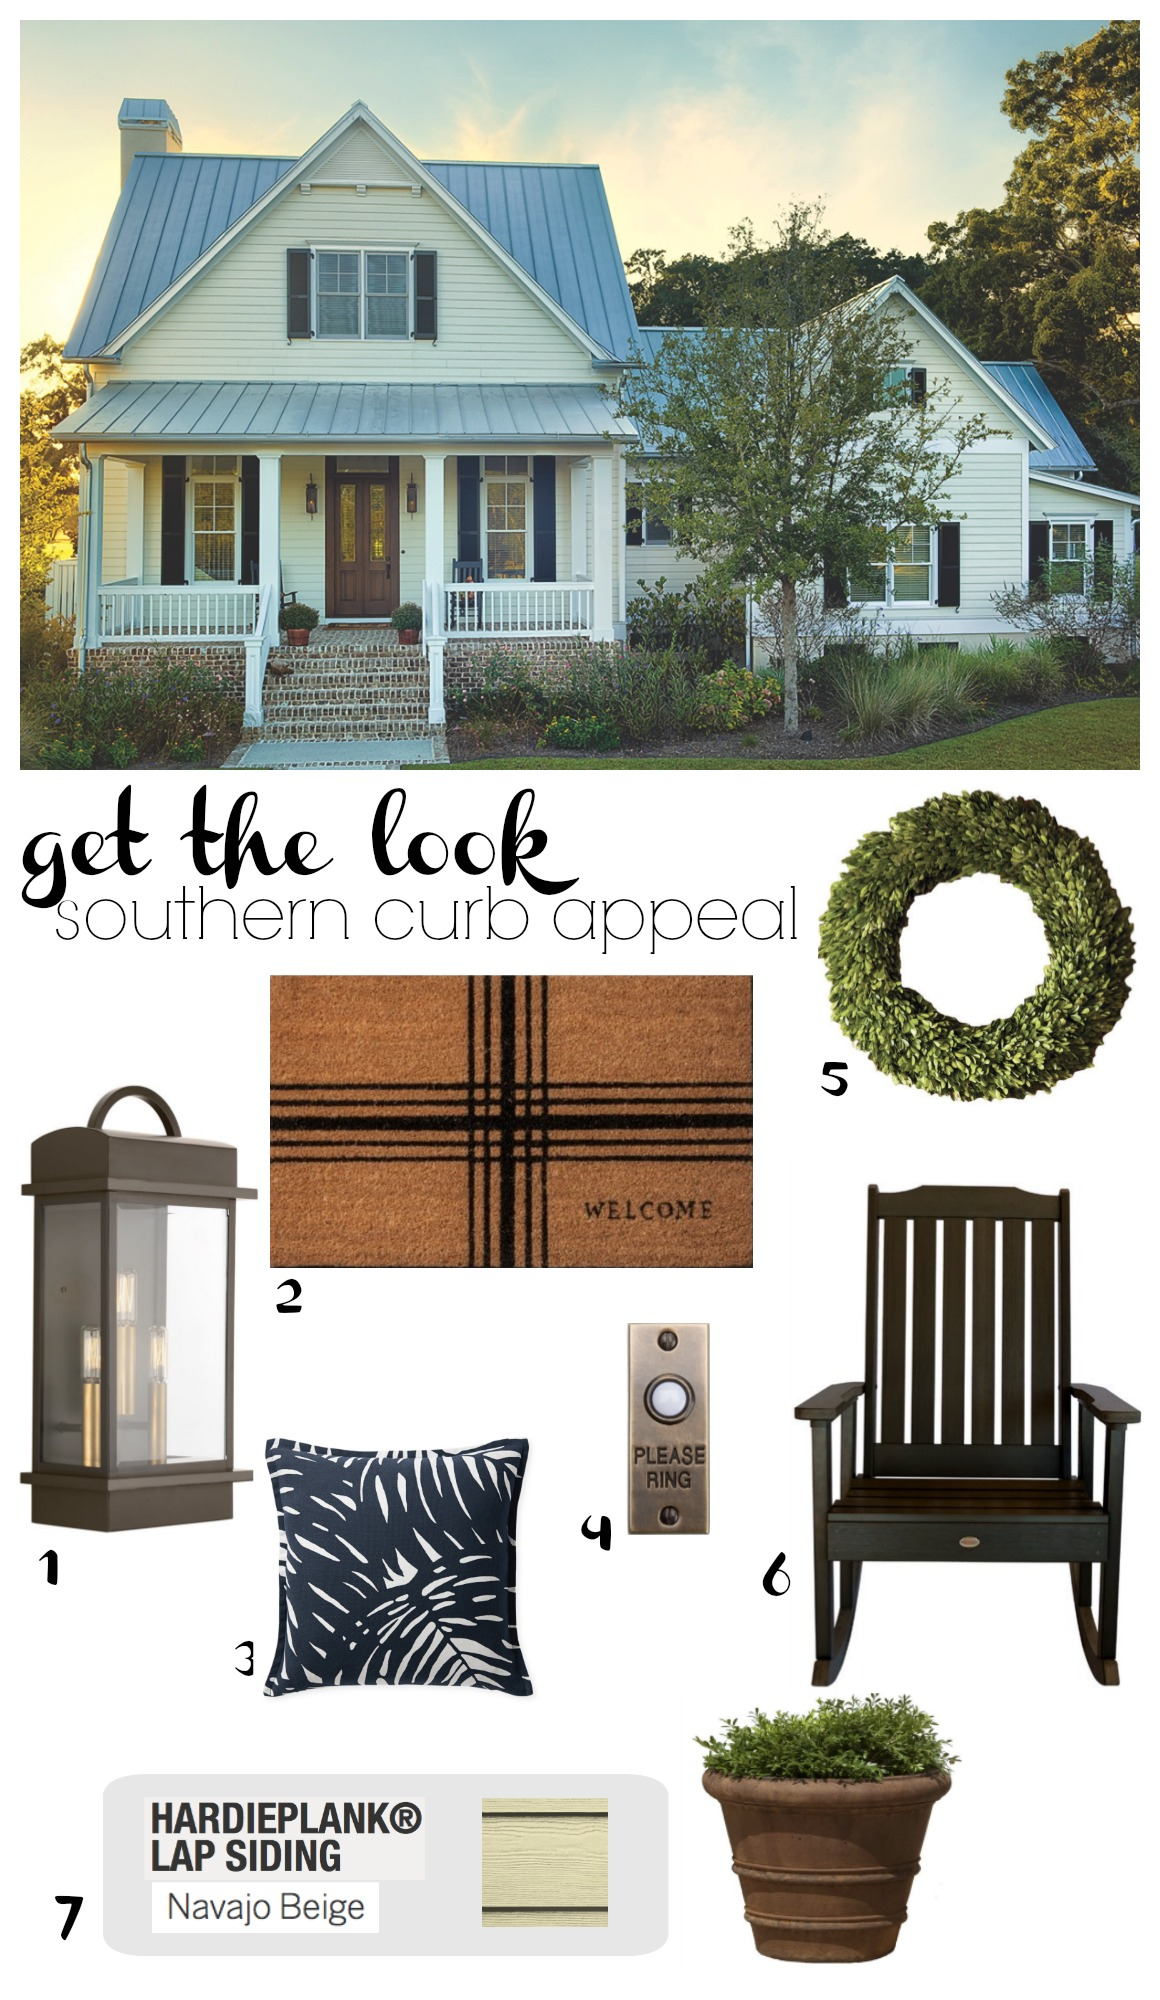 Get the Look- Southern Curb Appeal- Navajo Beige